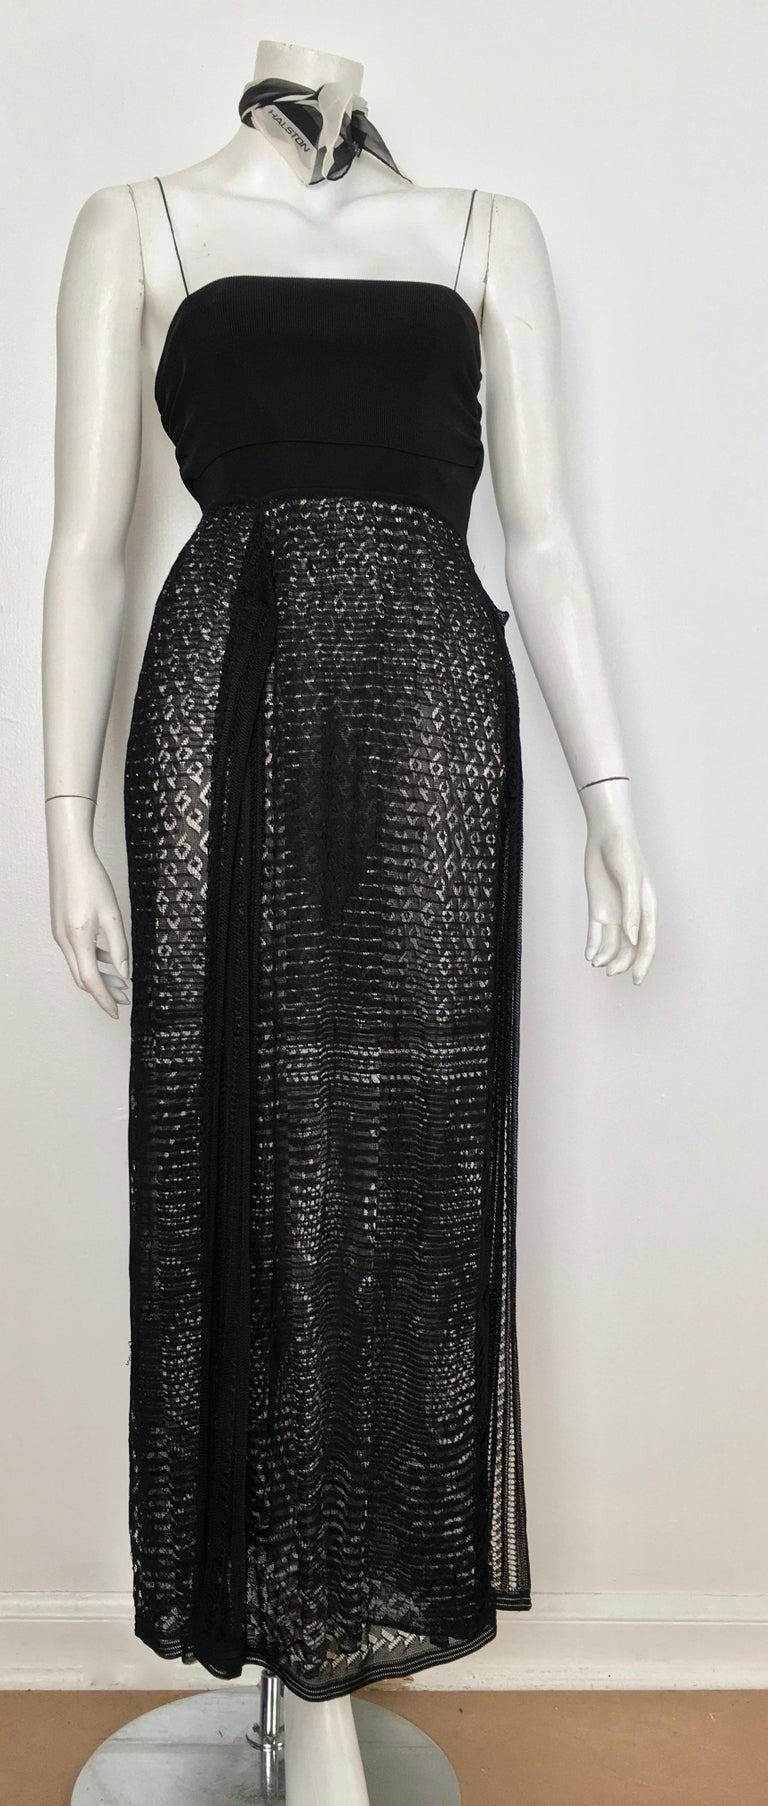 M by Missoni lace black & white spaghetti strap maxi dress is an Italian size 42 and fits like an USA size 4. This fits Matilda the Mannequin perfectly and she wears a size 4, so if you have the identical body type as Matilda then this was meant for